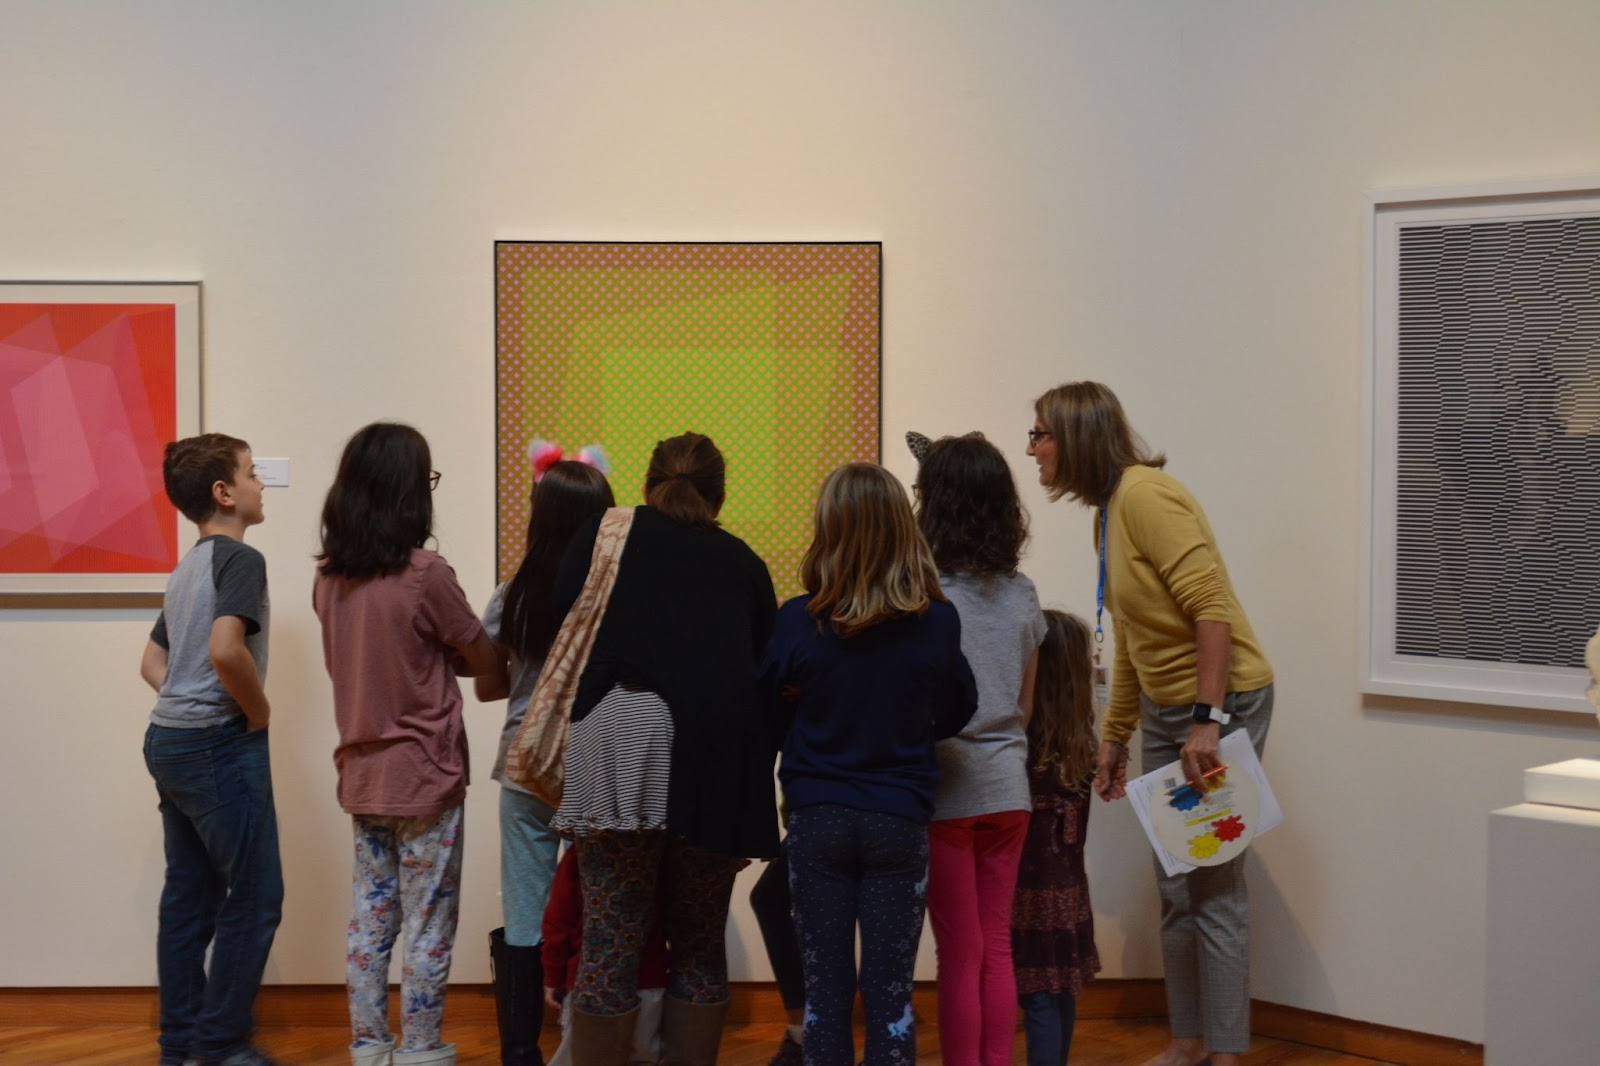 Docent Barb Young-Miller gets up close to a Julian Stanczak painting with a group of school students on a tour.